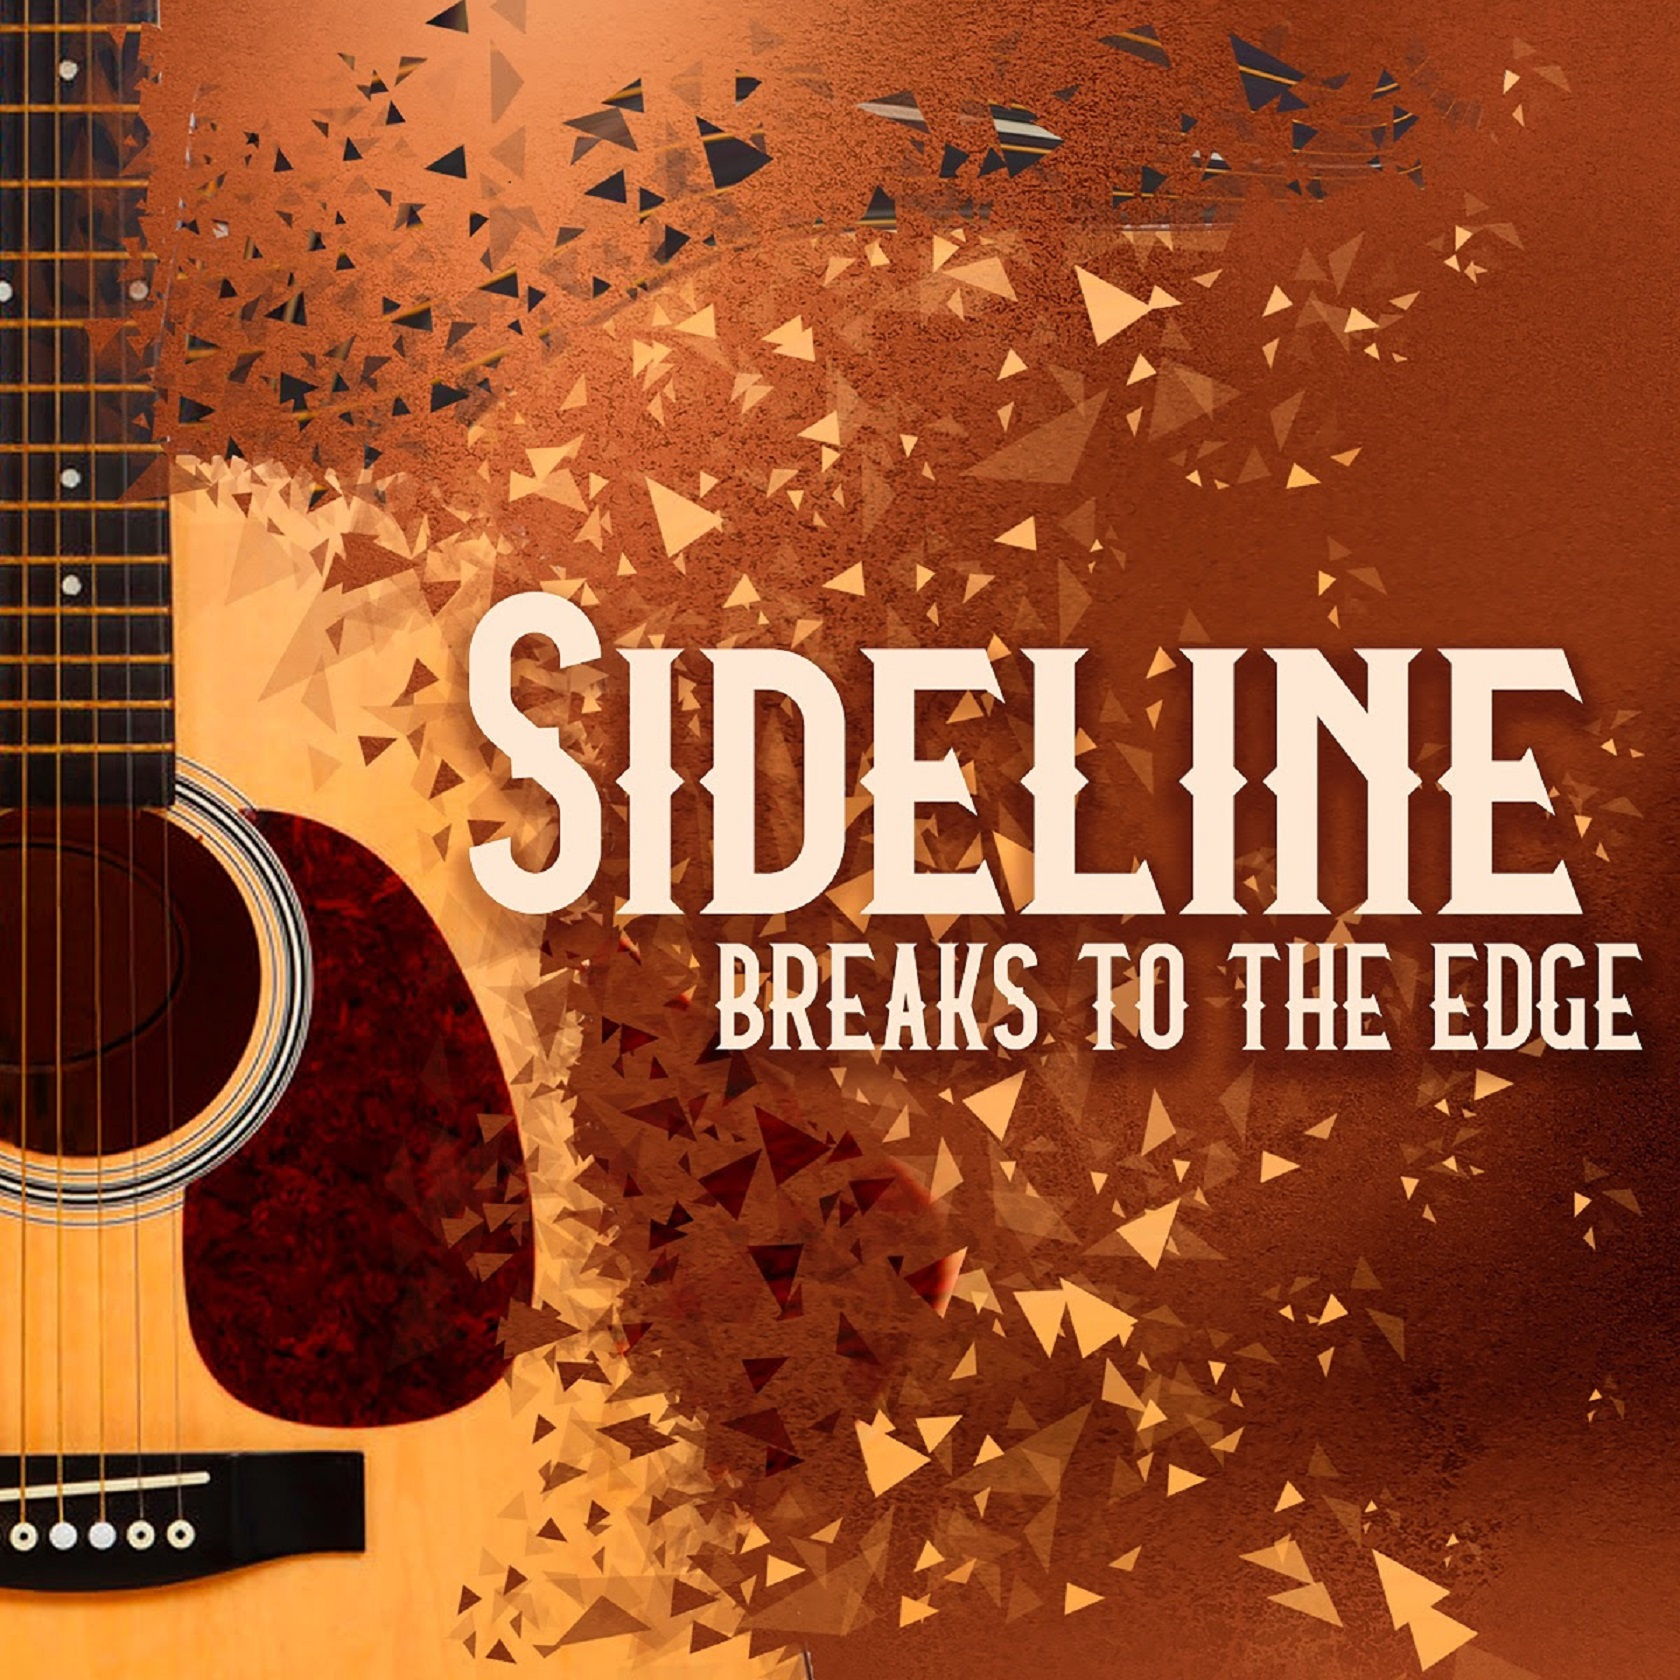 Sideline returns with new album, Breaks To The Edge